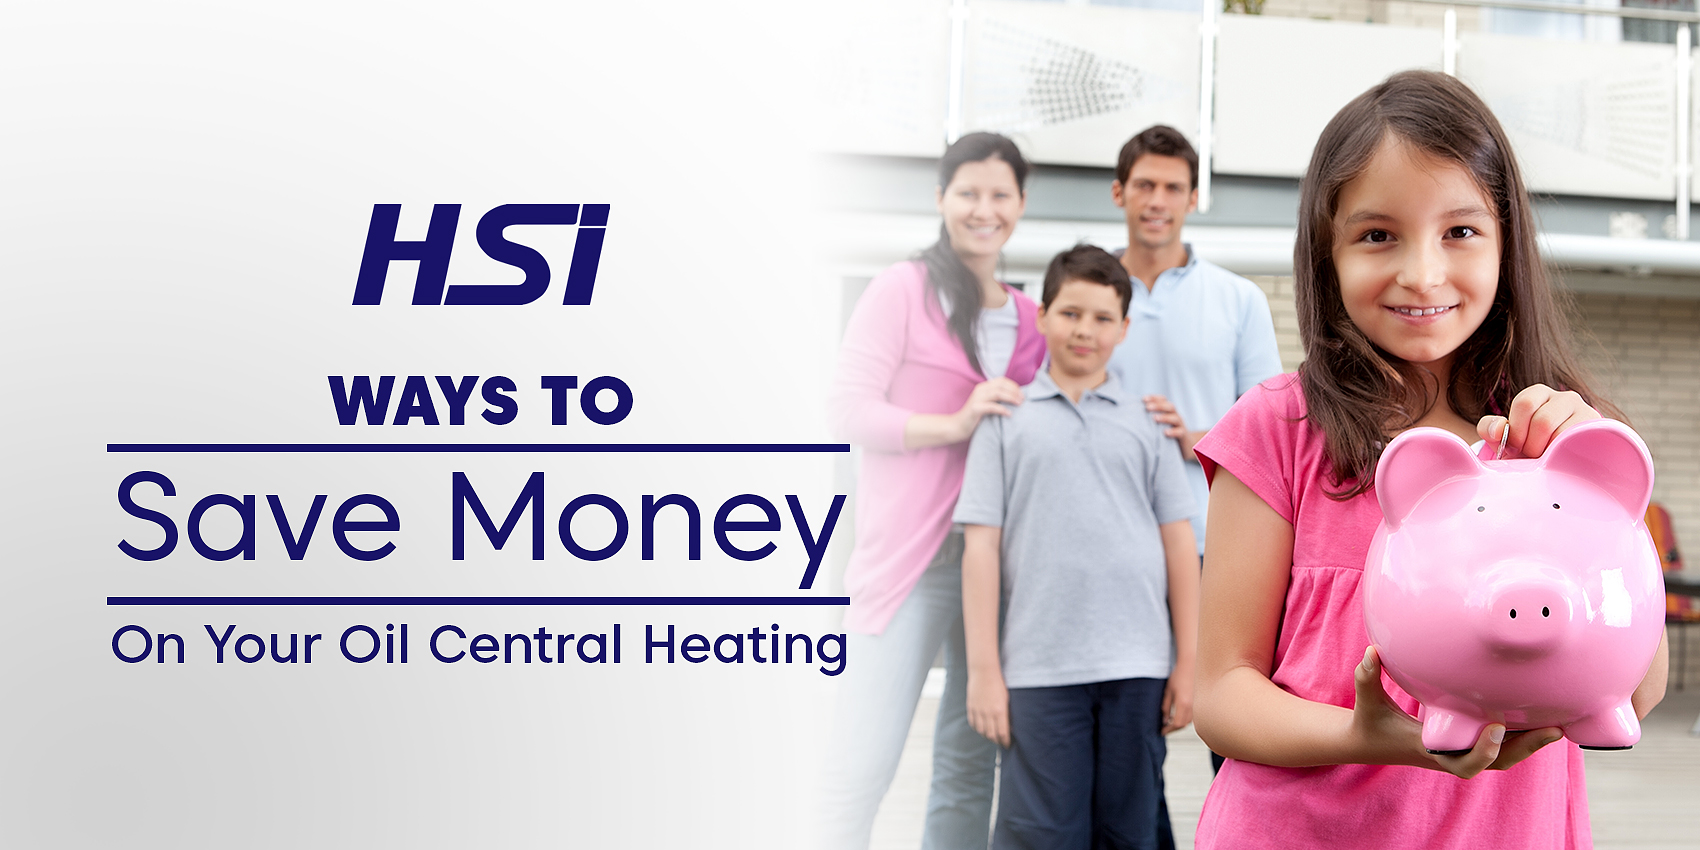 Ways To Save Money On Your Oil Central Heating